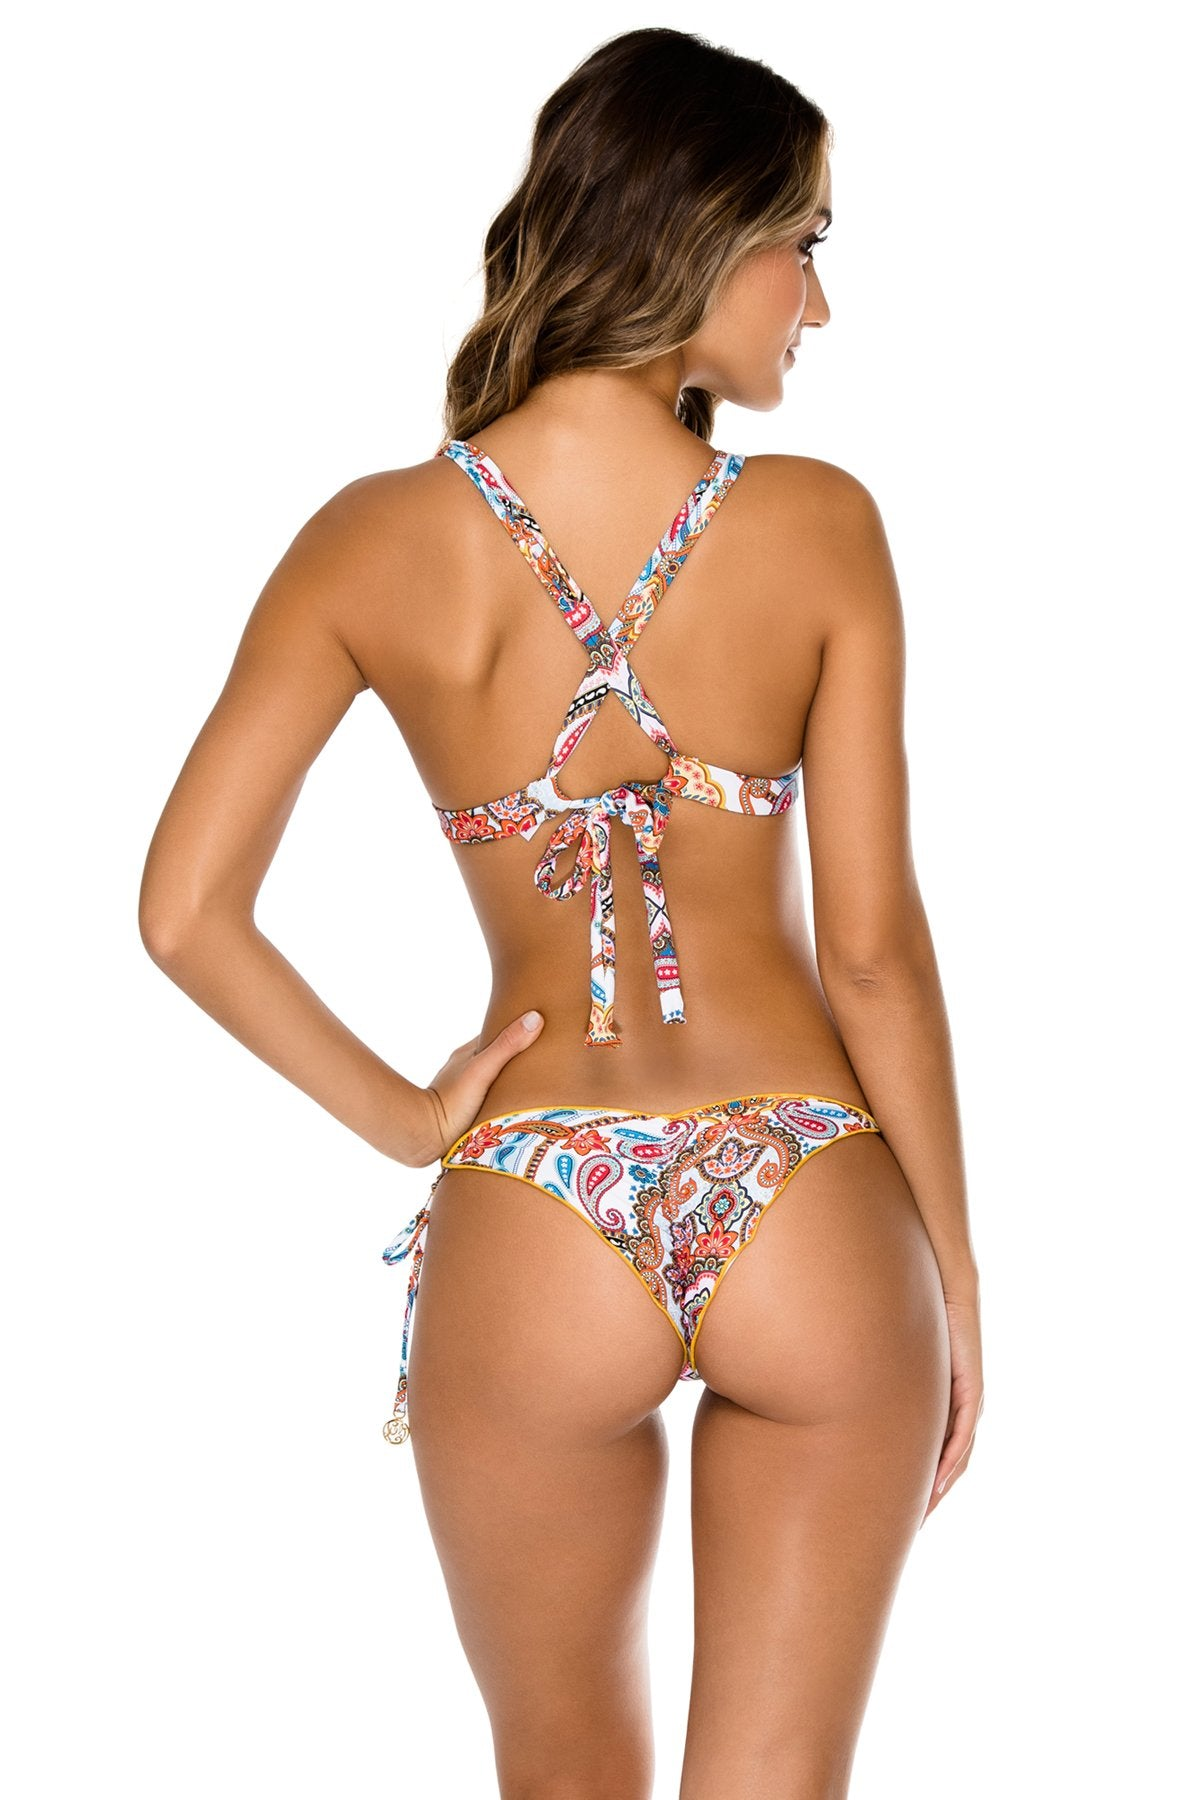 MAESTRANZA - Molded Push Up Bandeau Halter Top & Wavey Ruched Back Brazilian Tie Side Bottom • White